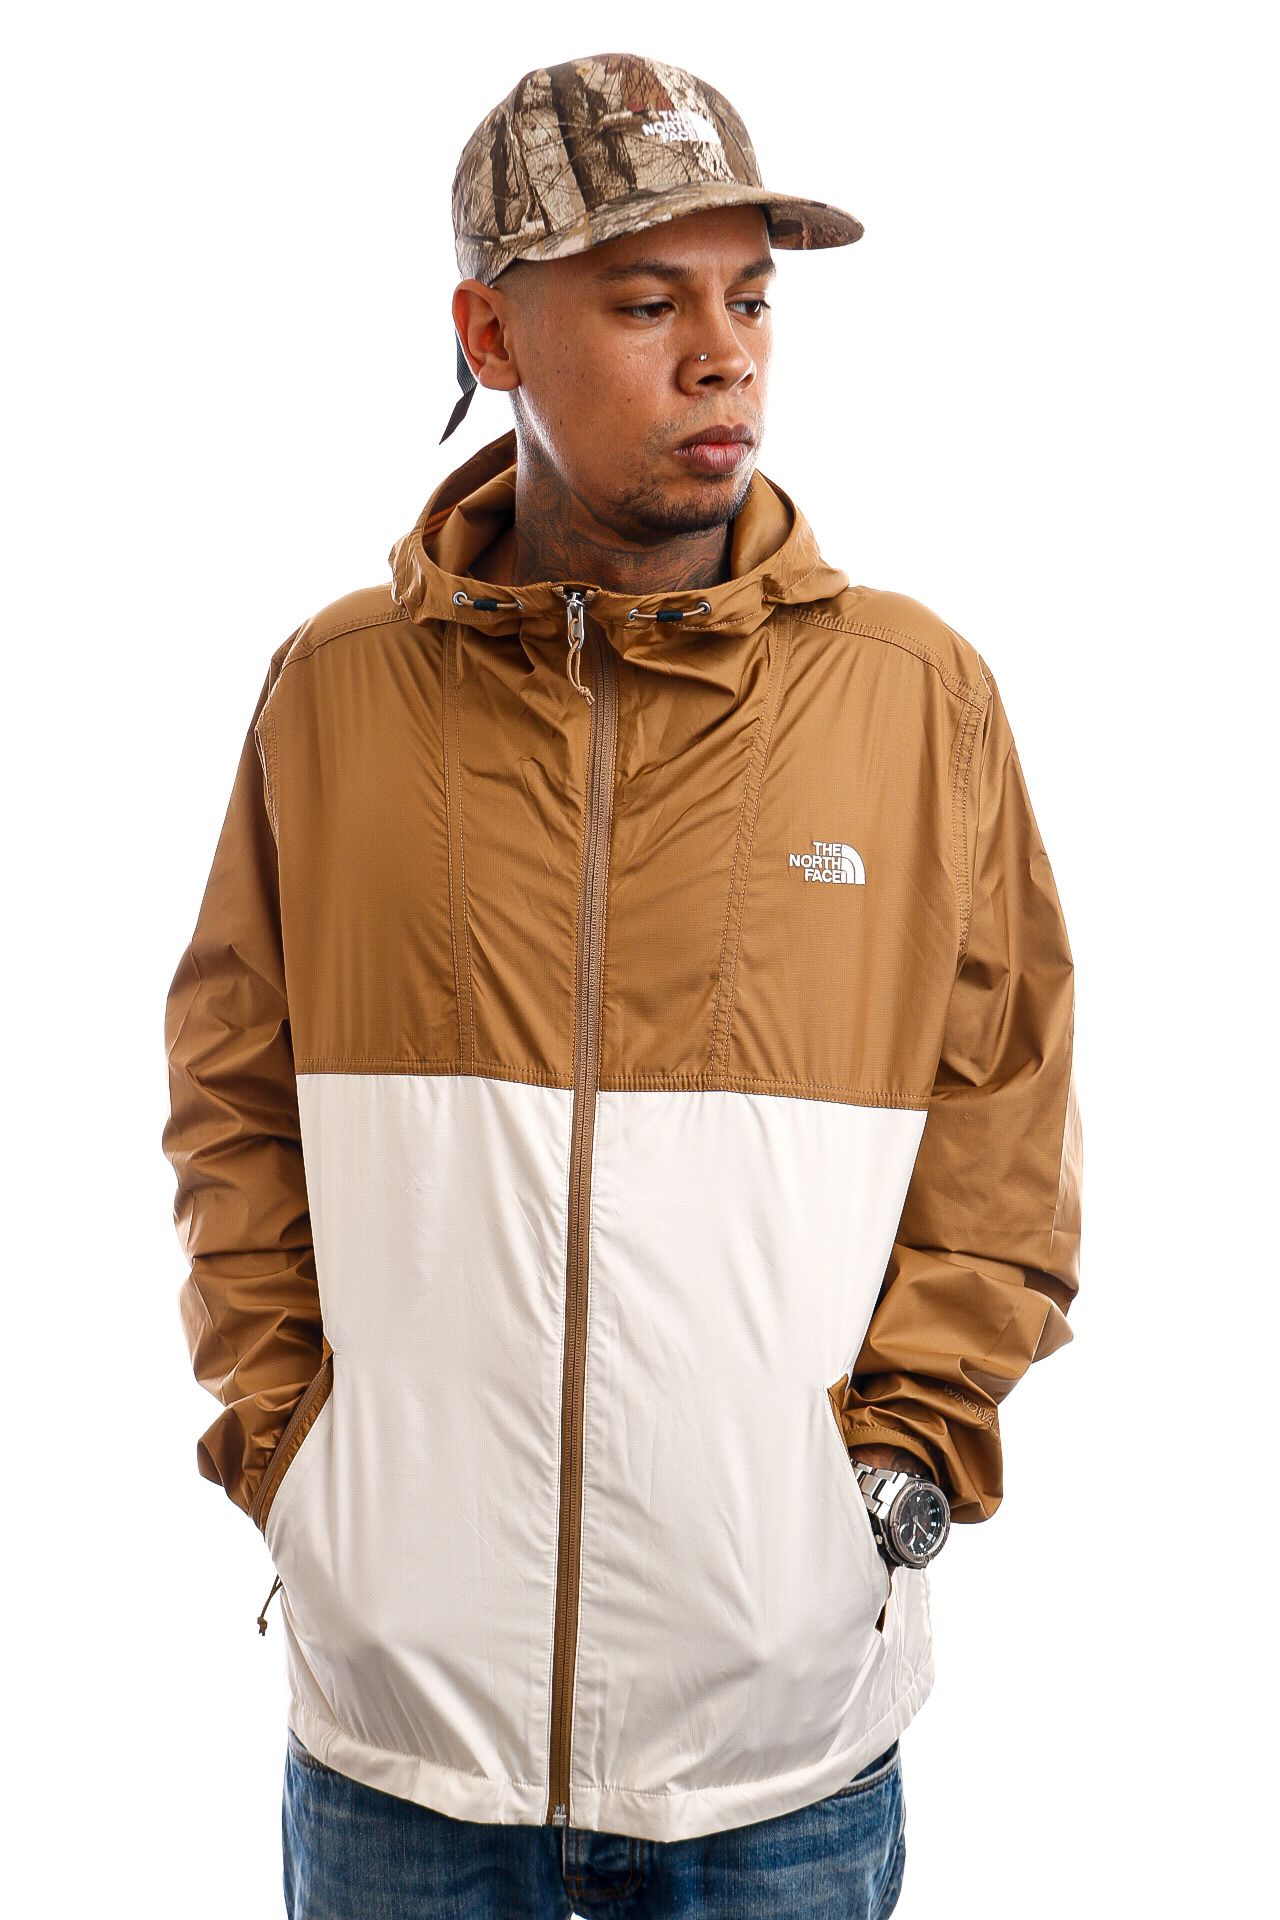 Afbeelding van The North Face Jas Mens Cyclone Jacket Brown/Off-White NF0A55STG4L1